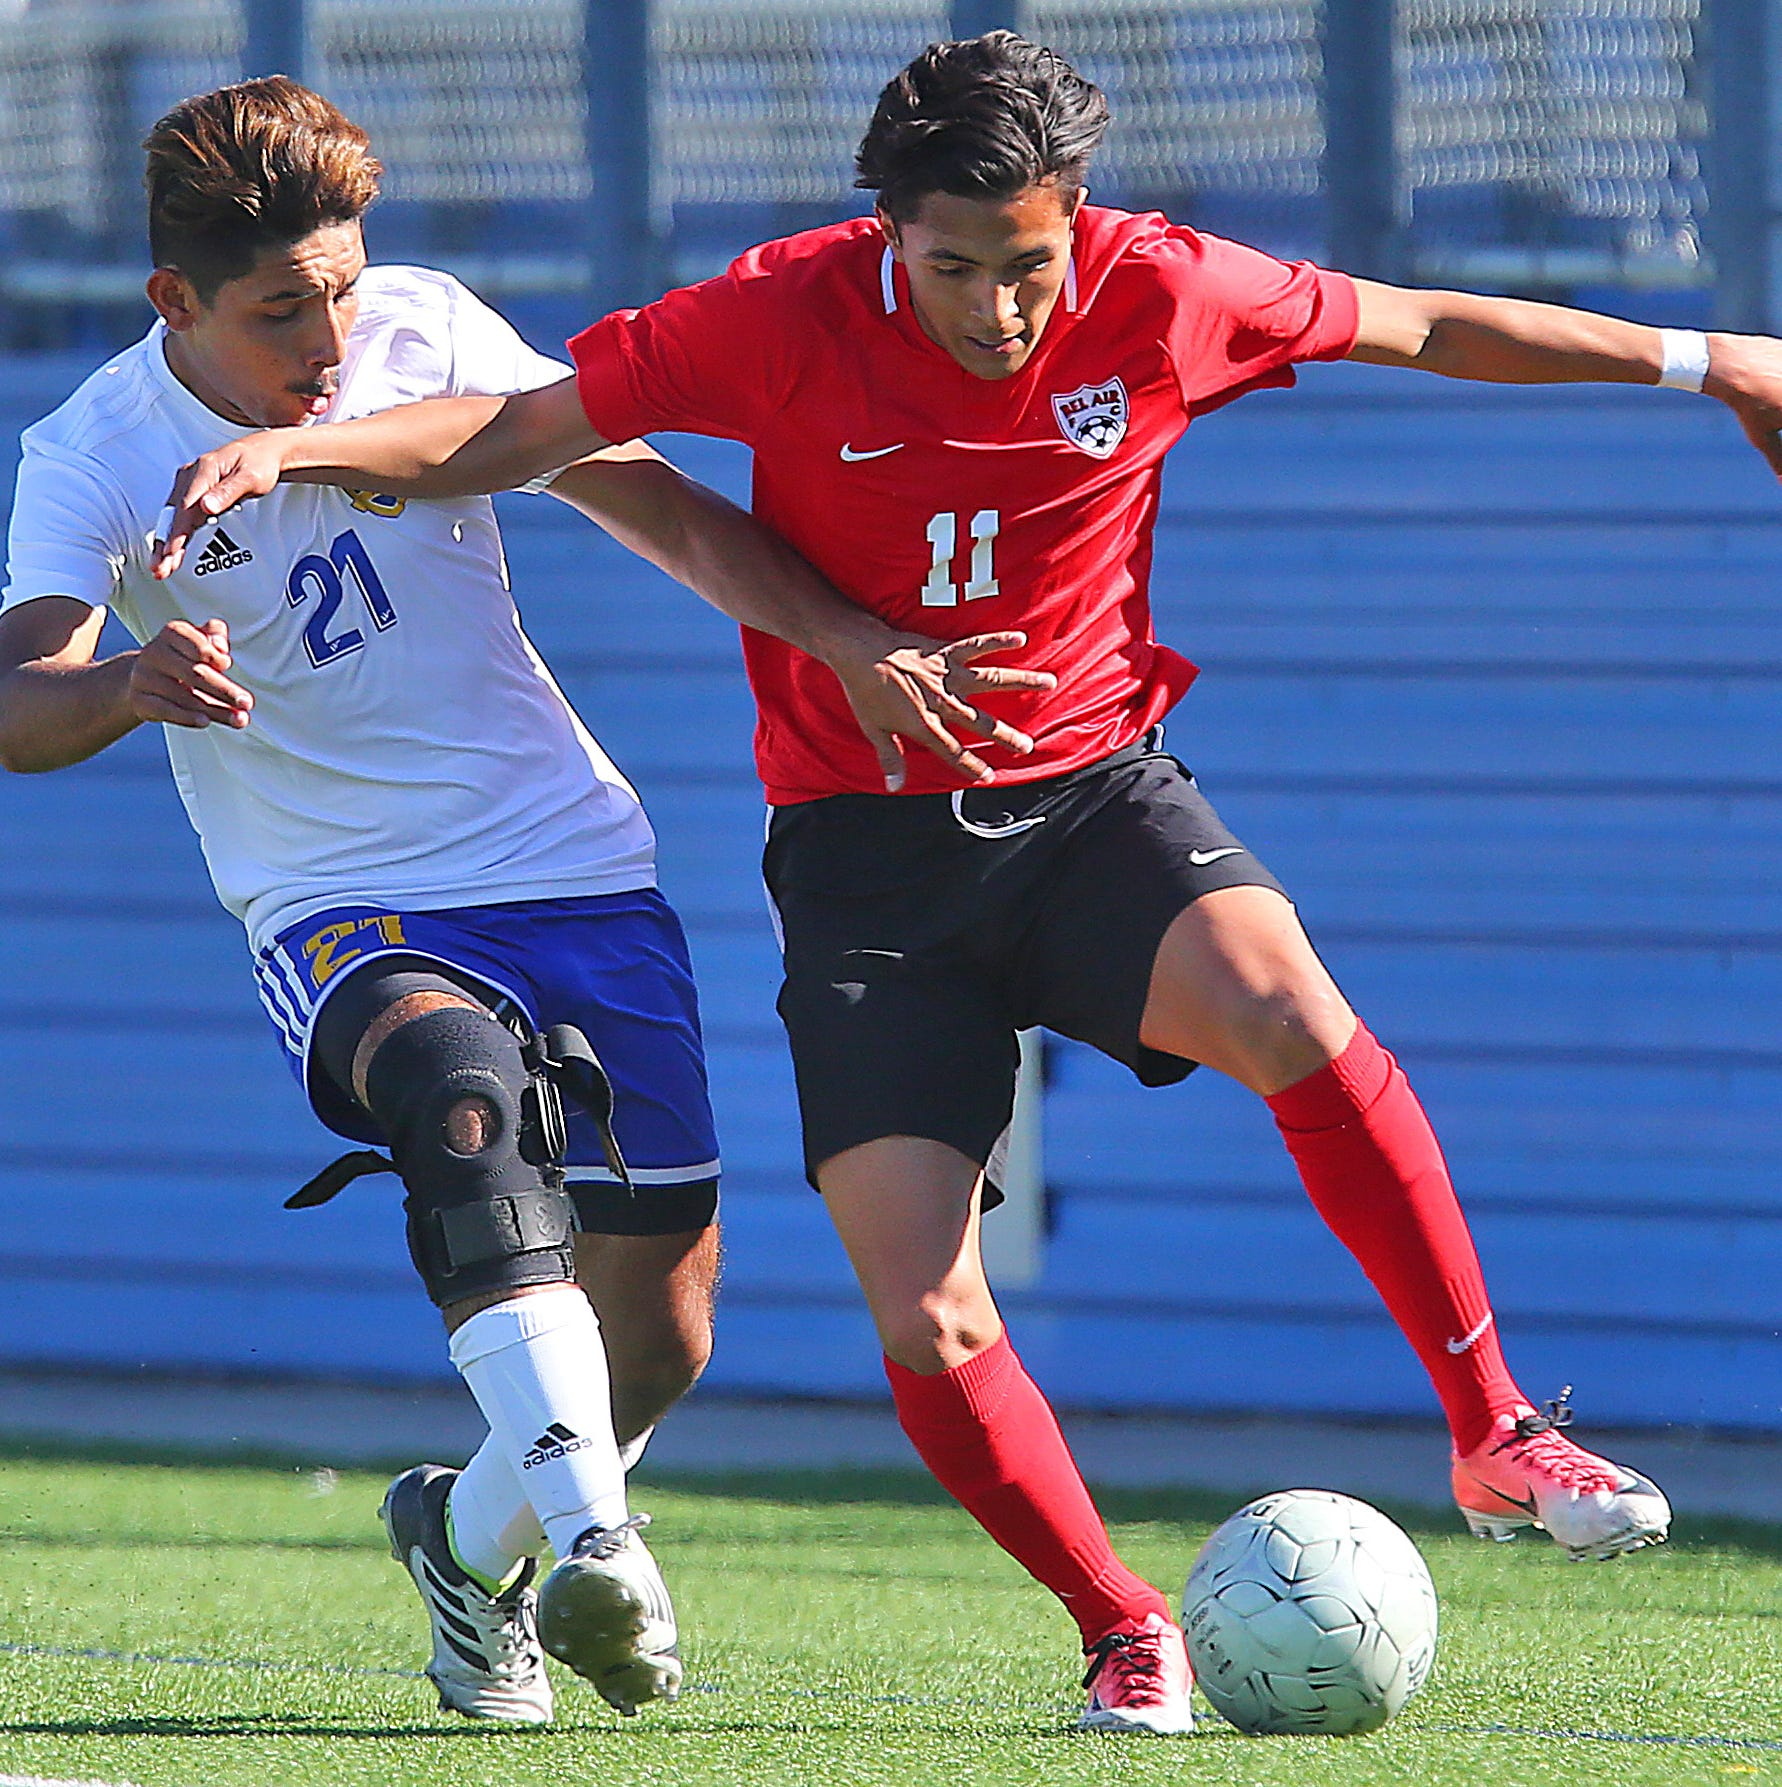 Valley View's Cuhutemoc Gonzalez (2) and El Paso Bel Air's Bryan Guzman (11) battle for the ball during a UIL Class 5A Semifinal game at Birkelbach Field on Thursday, April 18, 2019, in Georgetown. (Joel Martinez | jmartinez@themonitor.com)